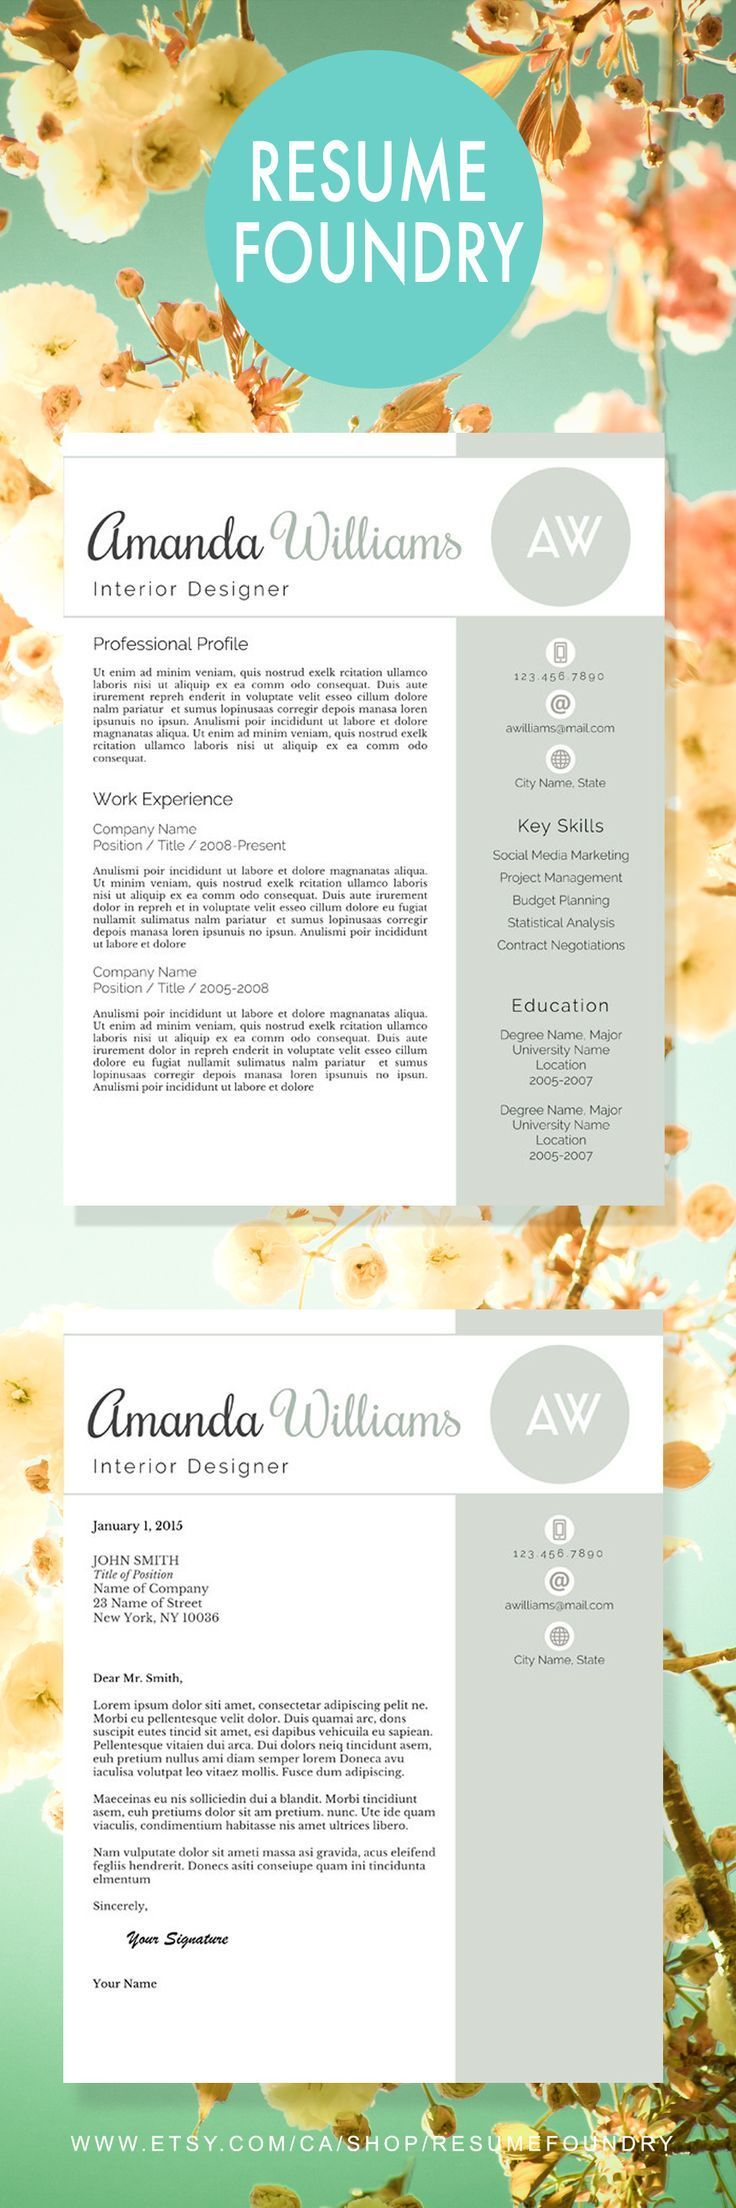 How To Do A Reference Page For A Resume Awesome Modern Resume Template For Word 13 Page Resume  Cover Letter  .